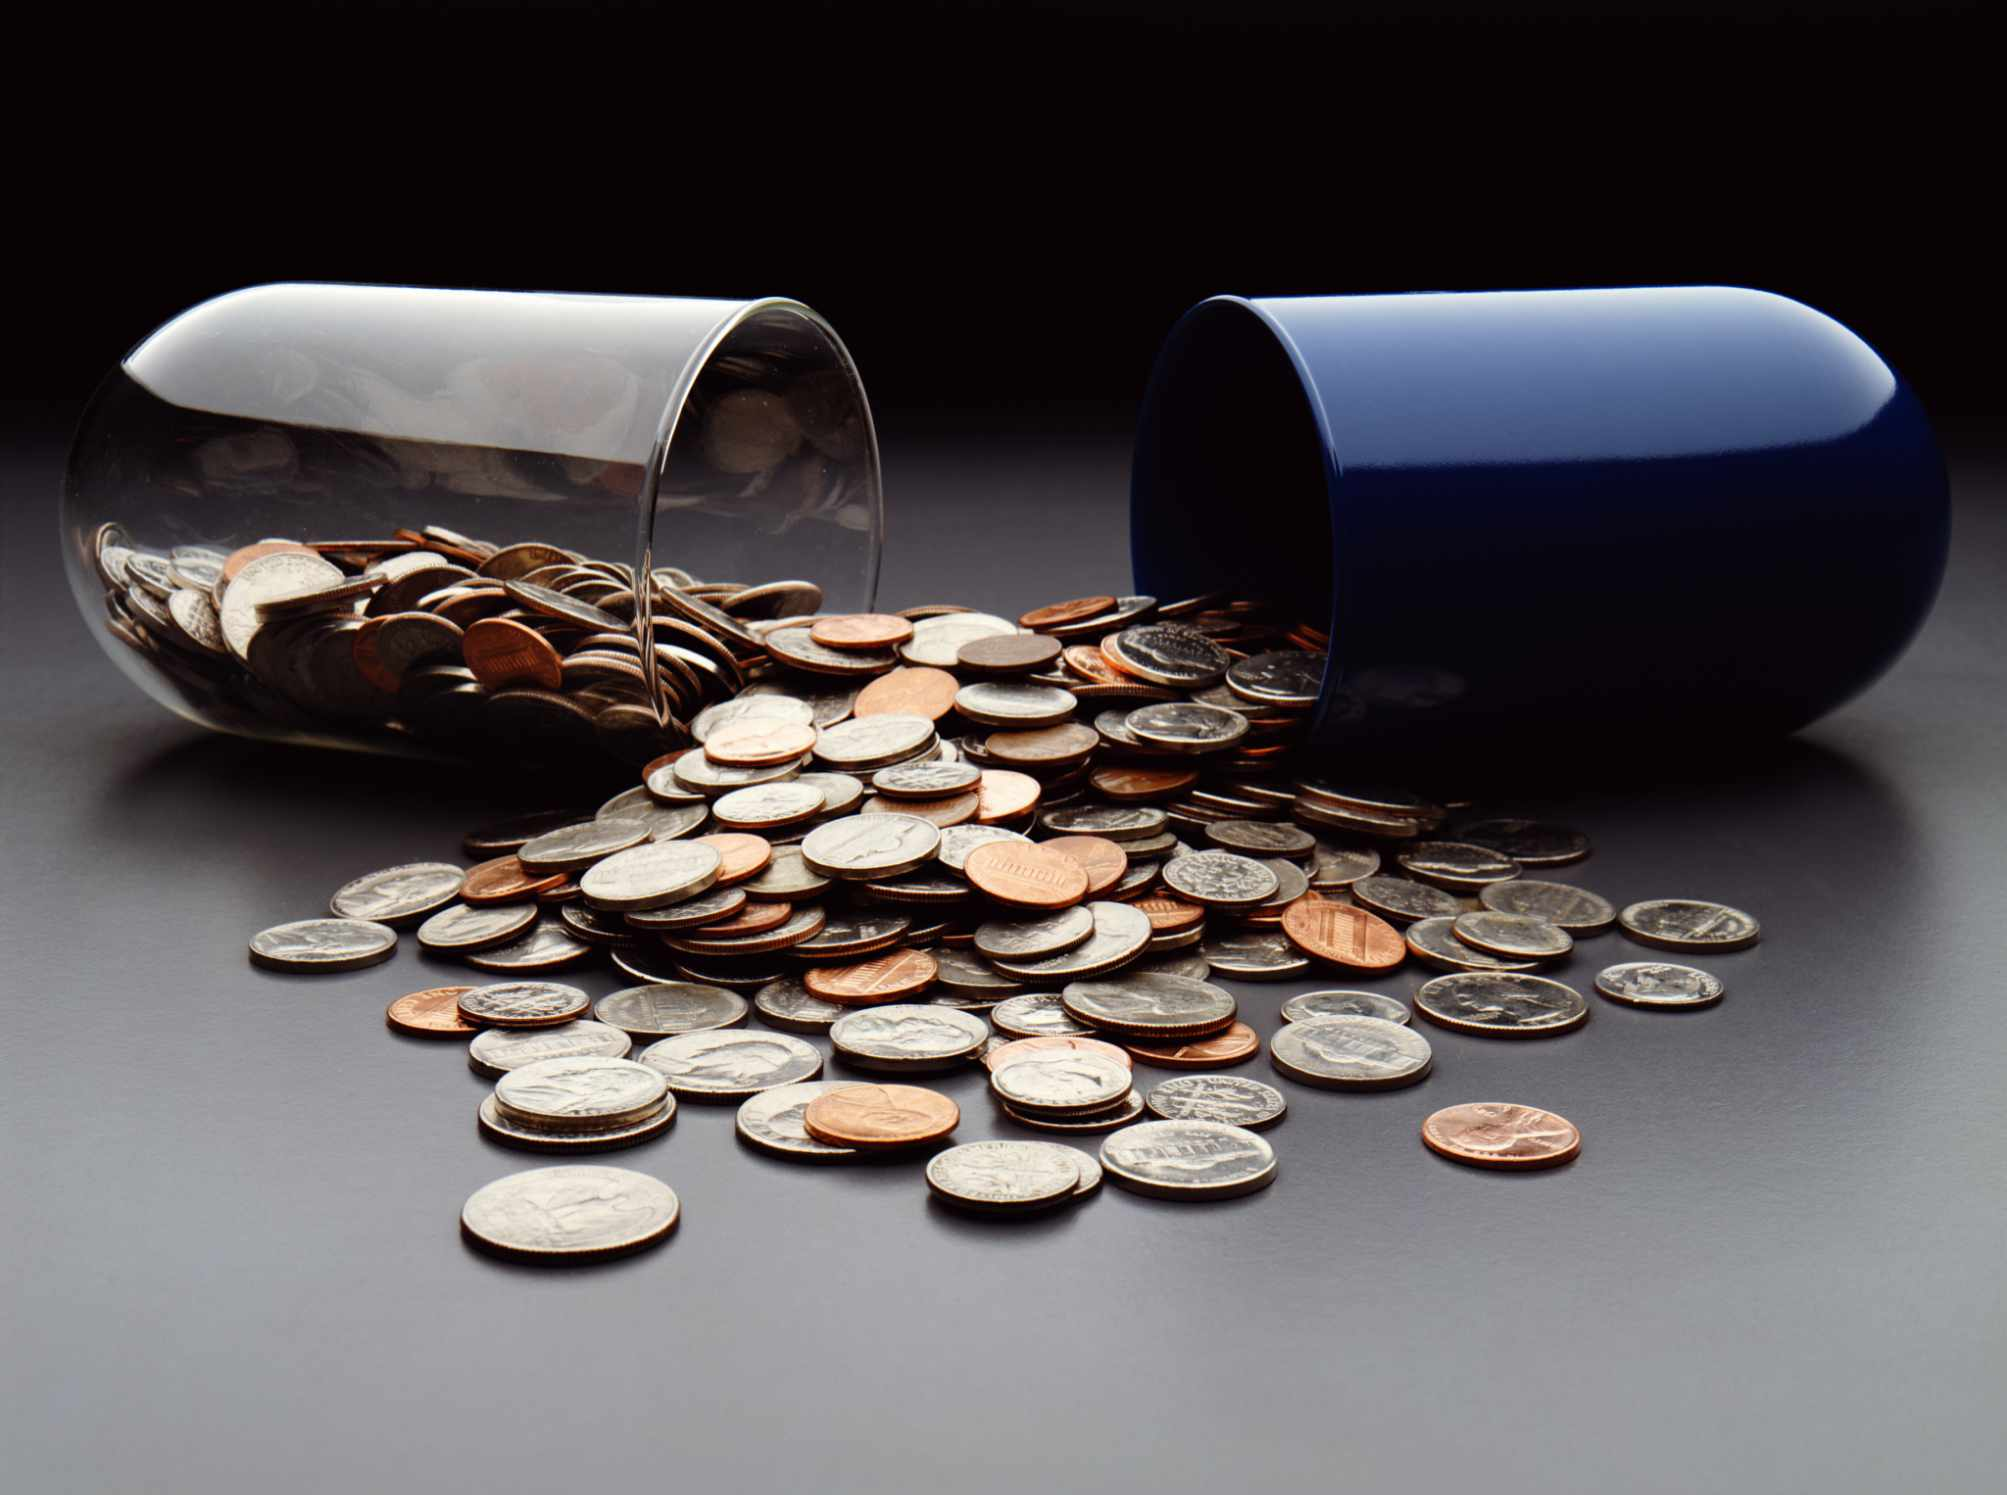 Large pill casing split apart with money coming out